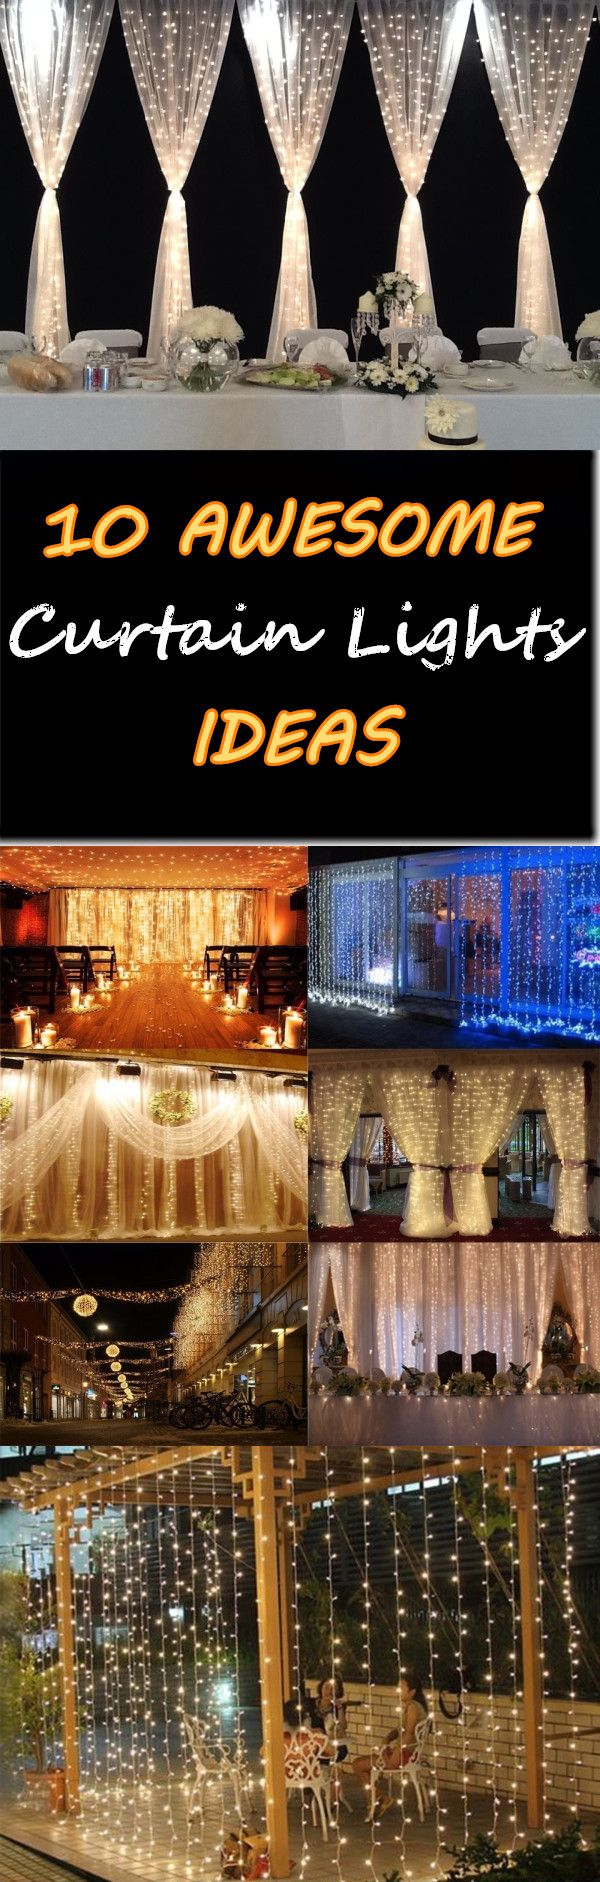 10 Awesome curtain lights ideas :) Click the picture or the Visit button you can get it ~Cheers